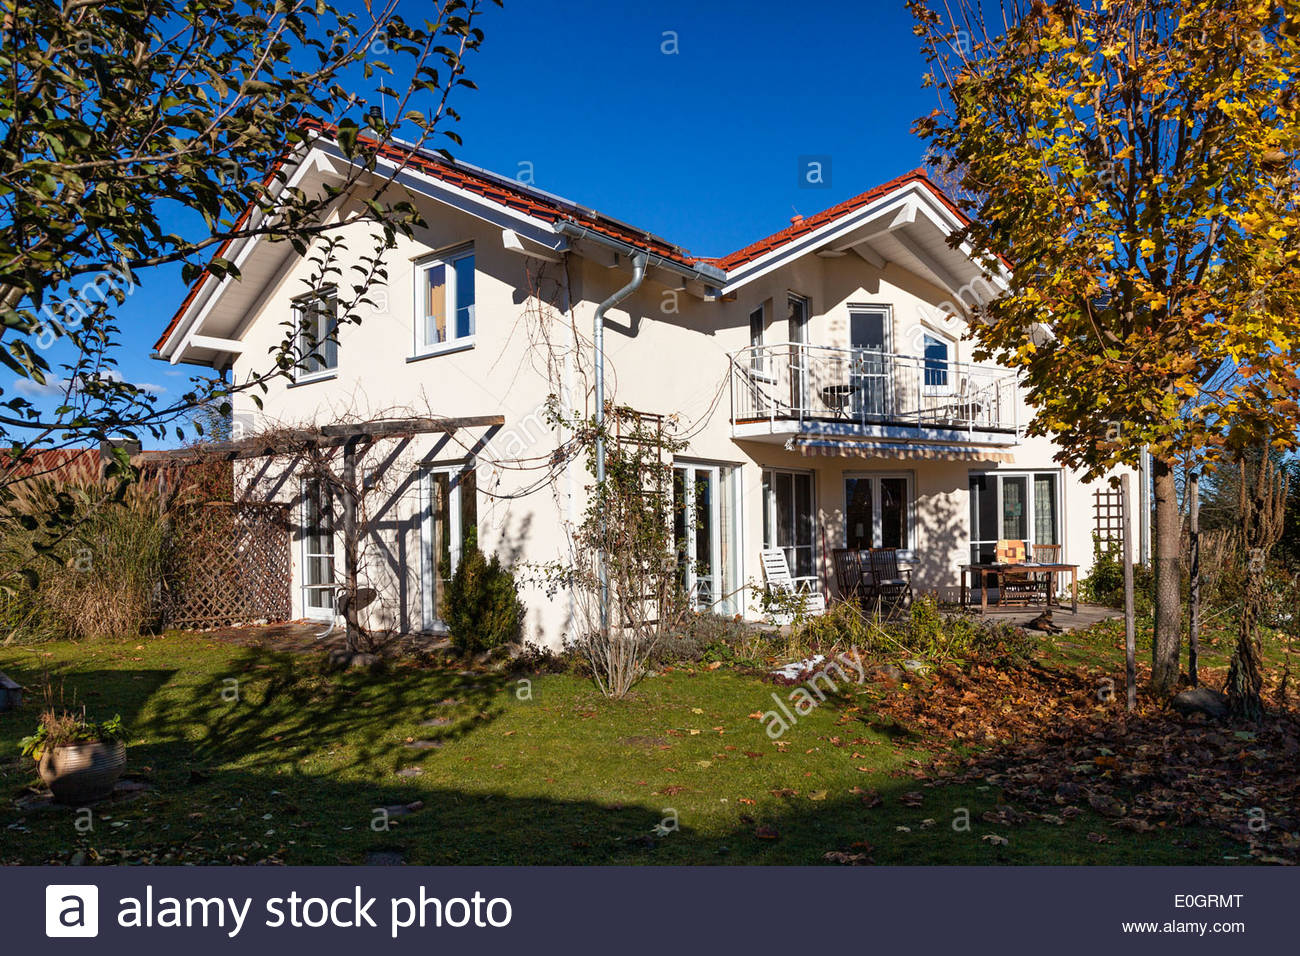 Detached family house with garden in autumn, Upper Bavaria, Germany - Stock Image